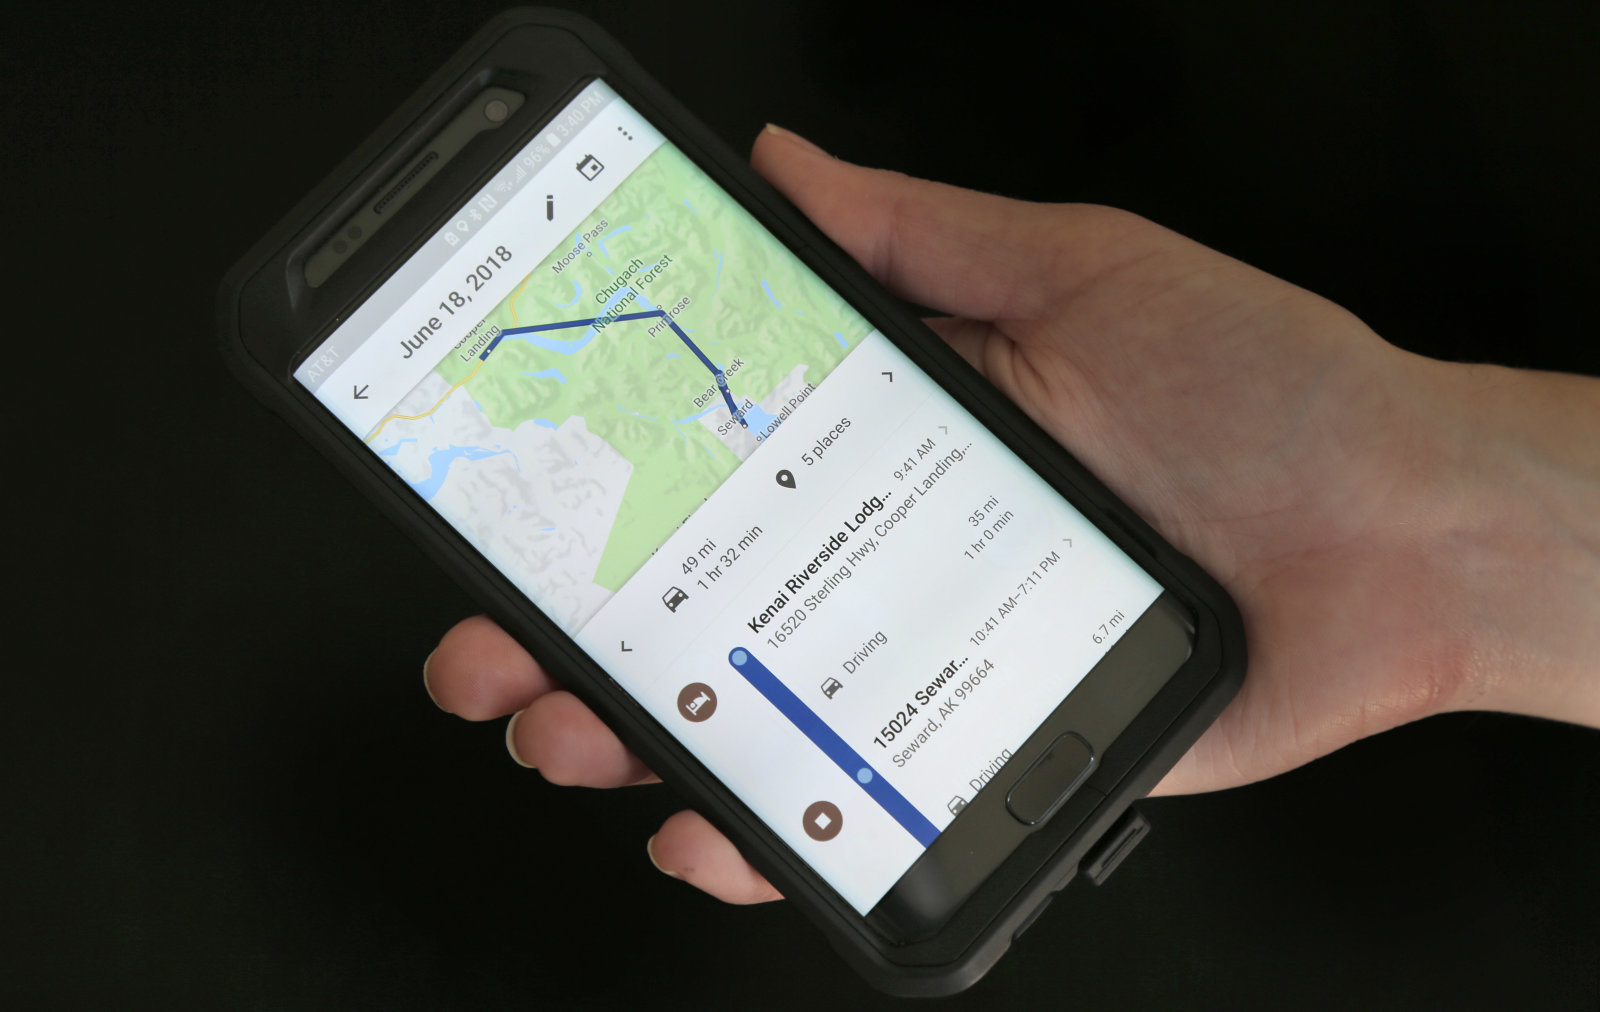 Google Launched  Go incognito A New mode for Maps on Android